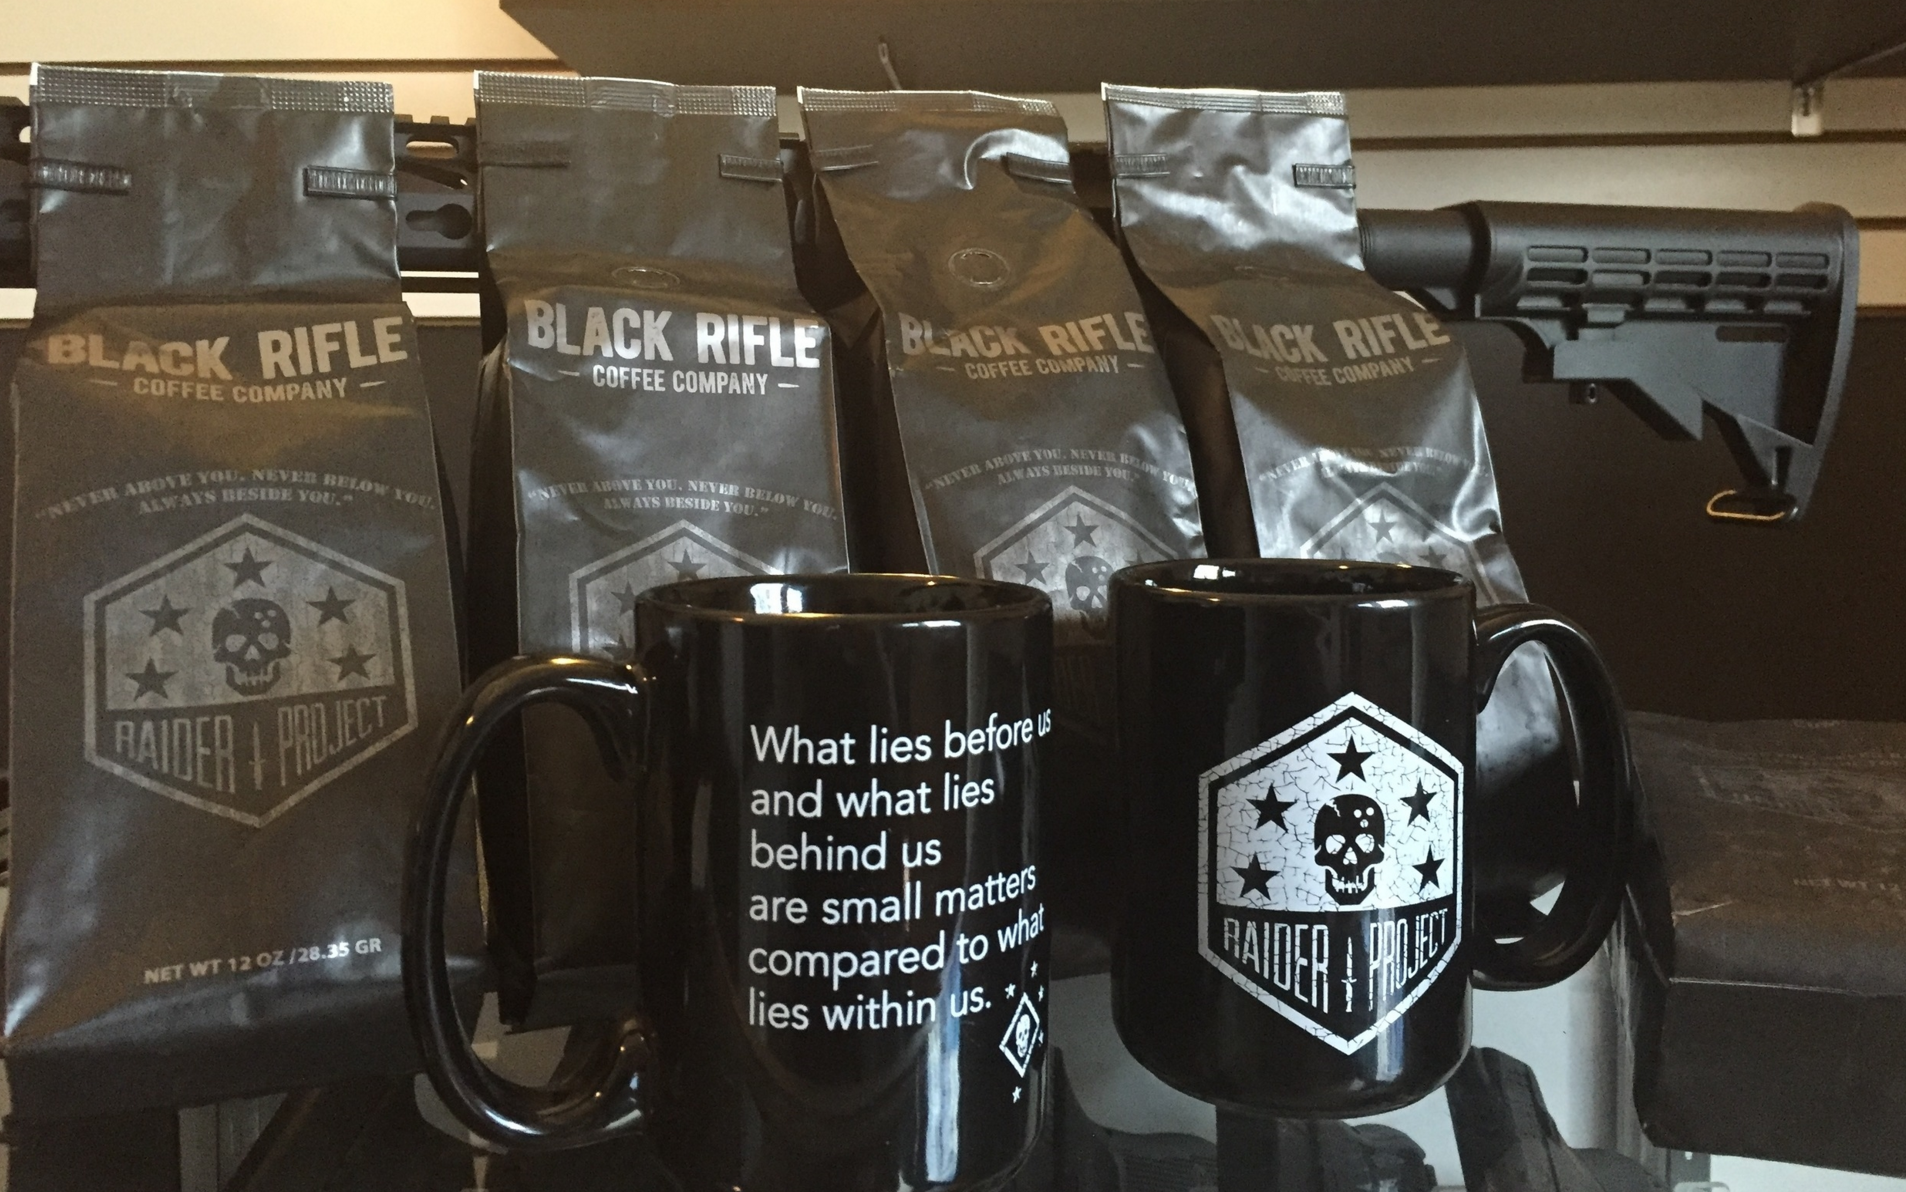 Black Rifle Raider Project GFC and Mug Set